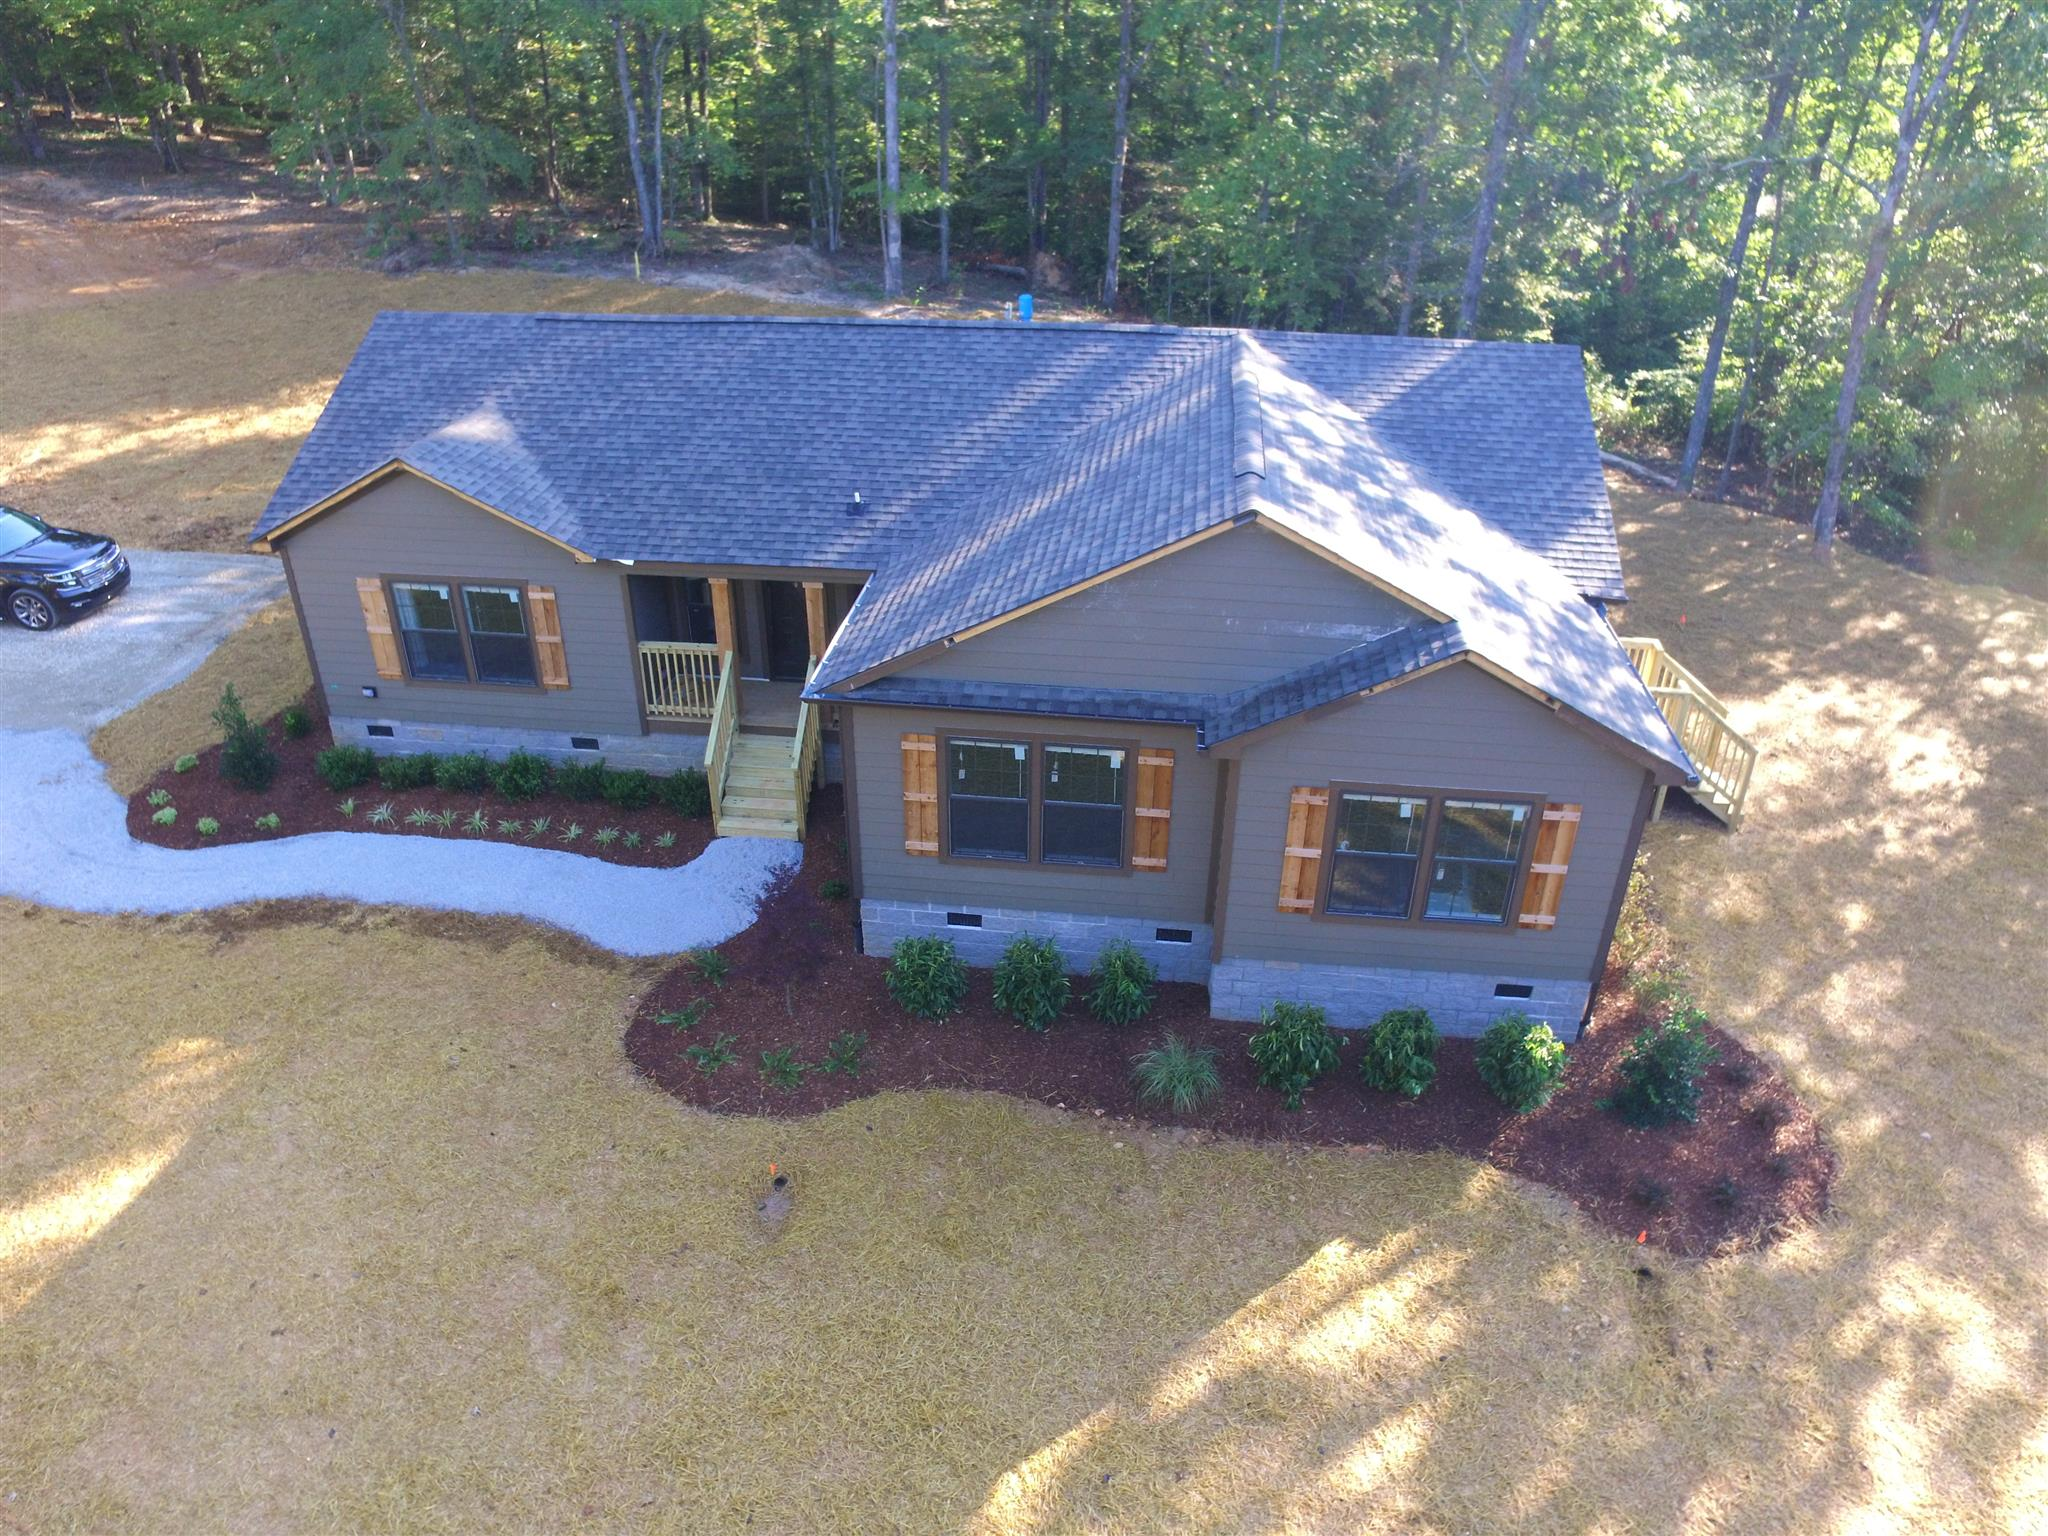 0 Ridgewood Drive, MC EWEN, TN 37101 - MC EWEN, TN real estate listing